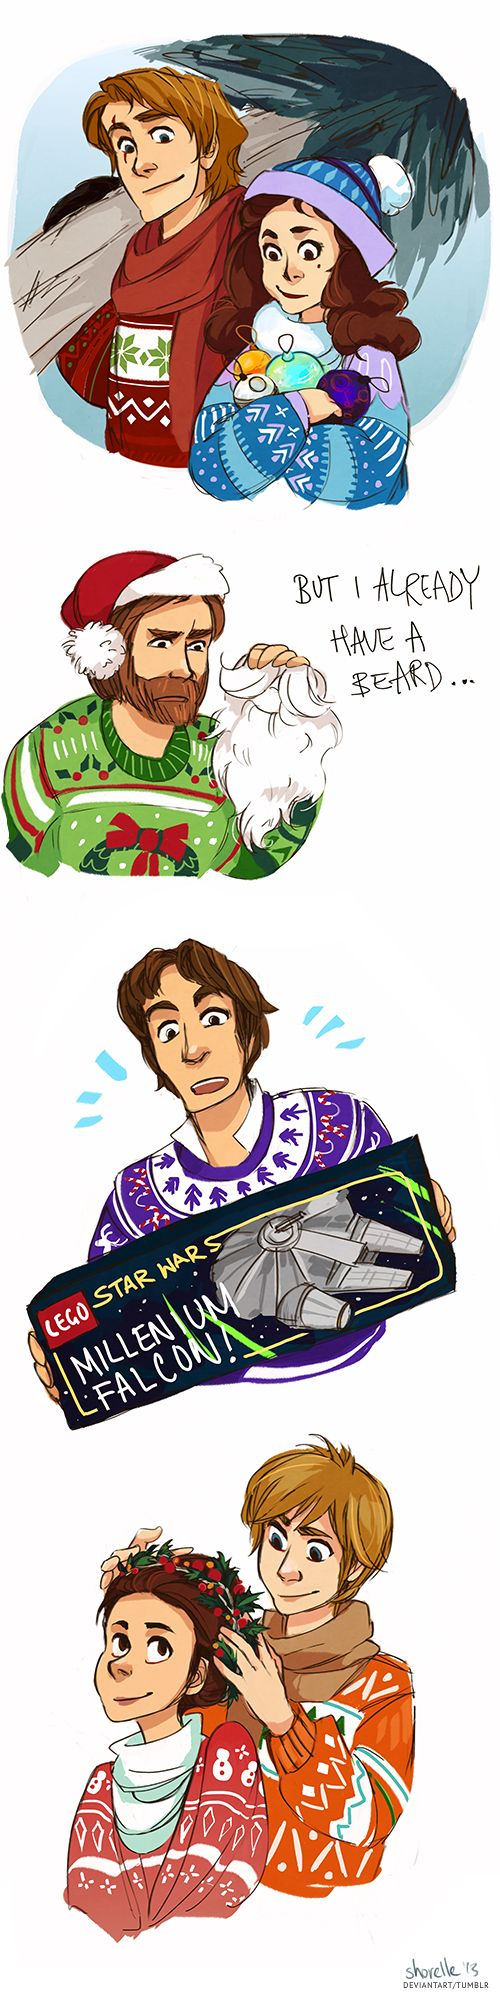 a star wars holiday special by shorelle.deviantart.com on @deviantART